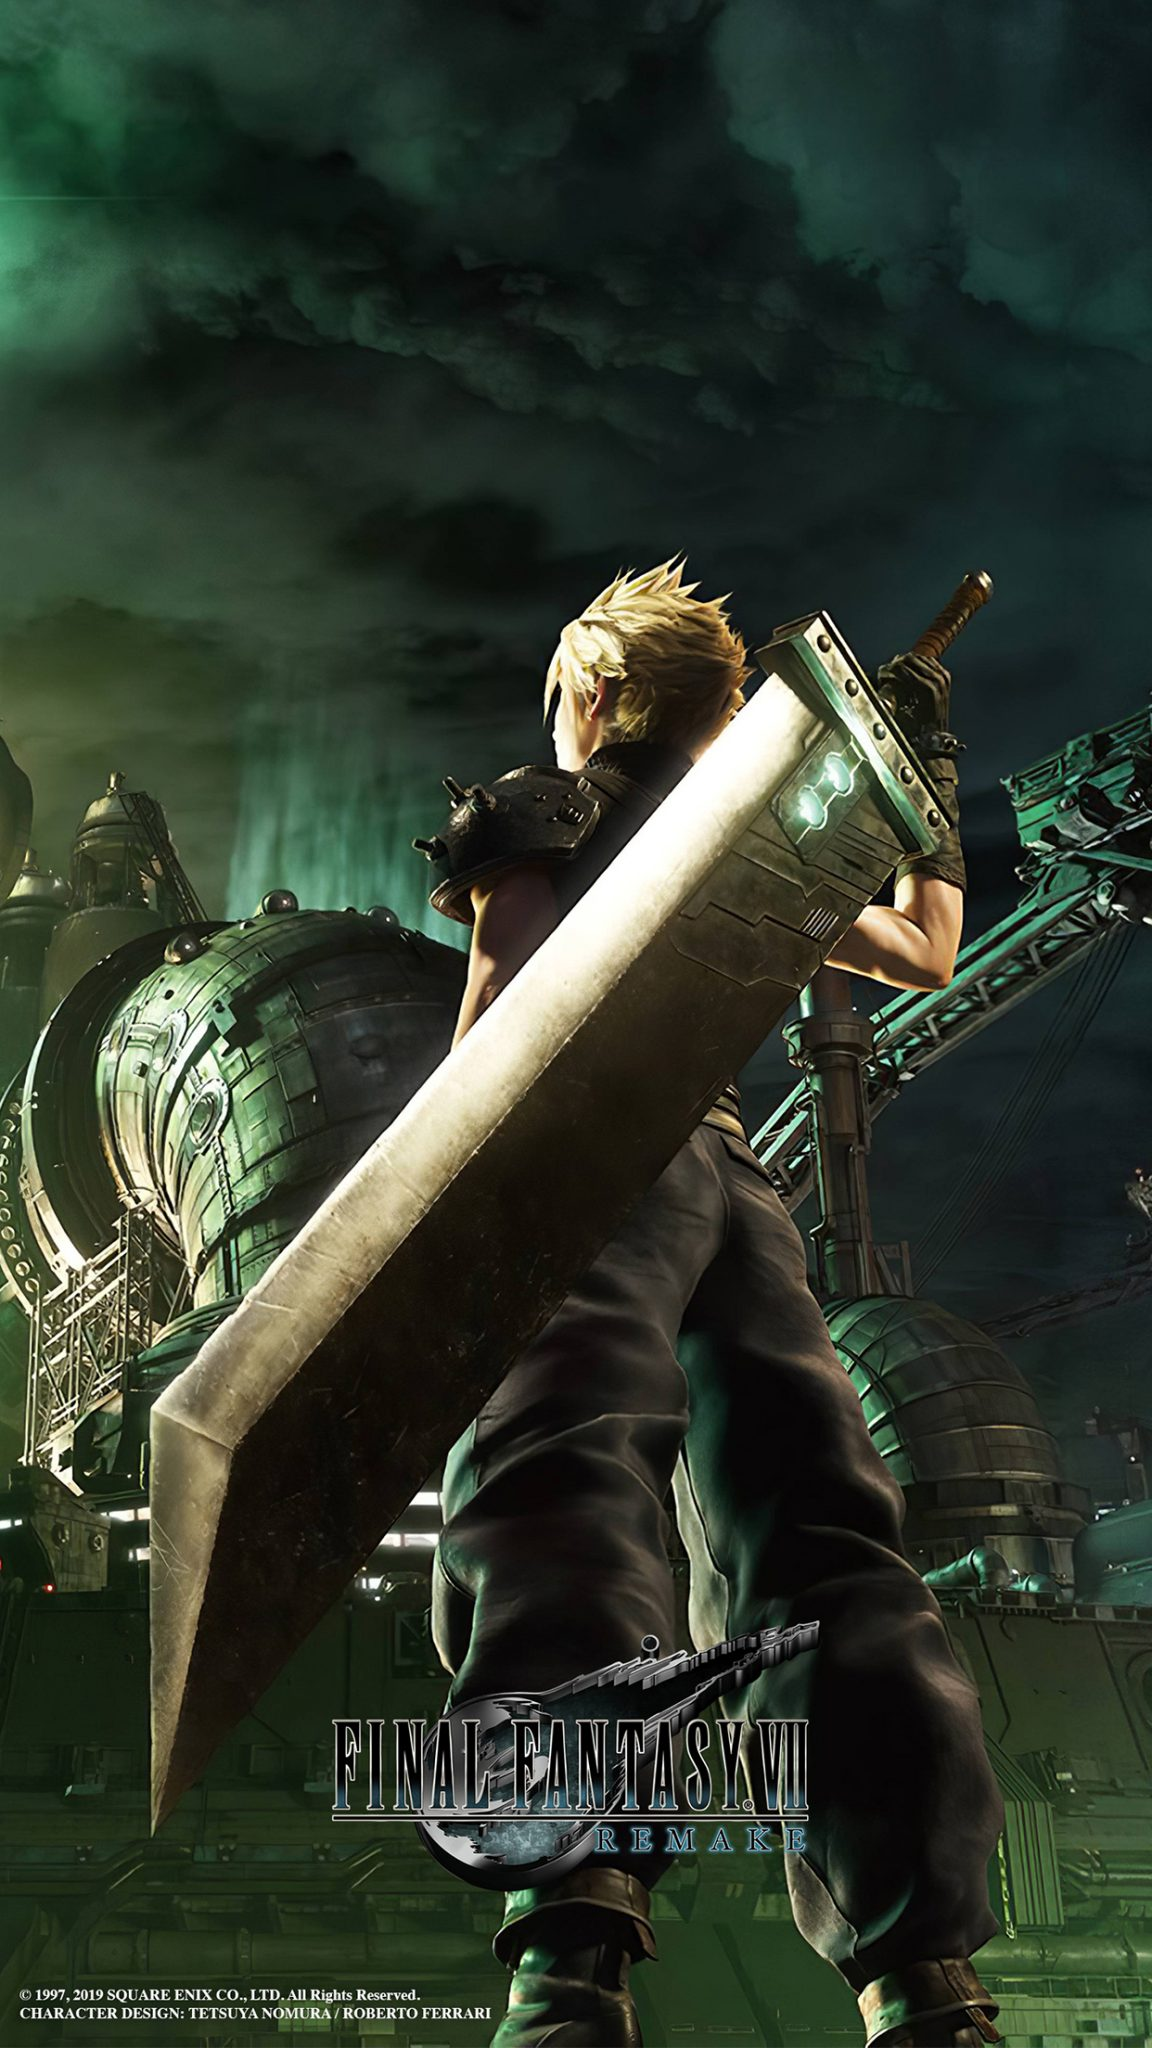 Final Fantasy Vii Remake Cloud Artwork Wallpaper Cat With Monocle